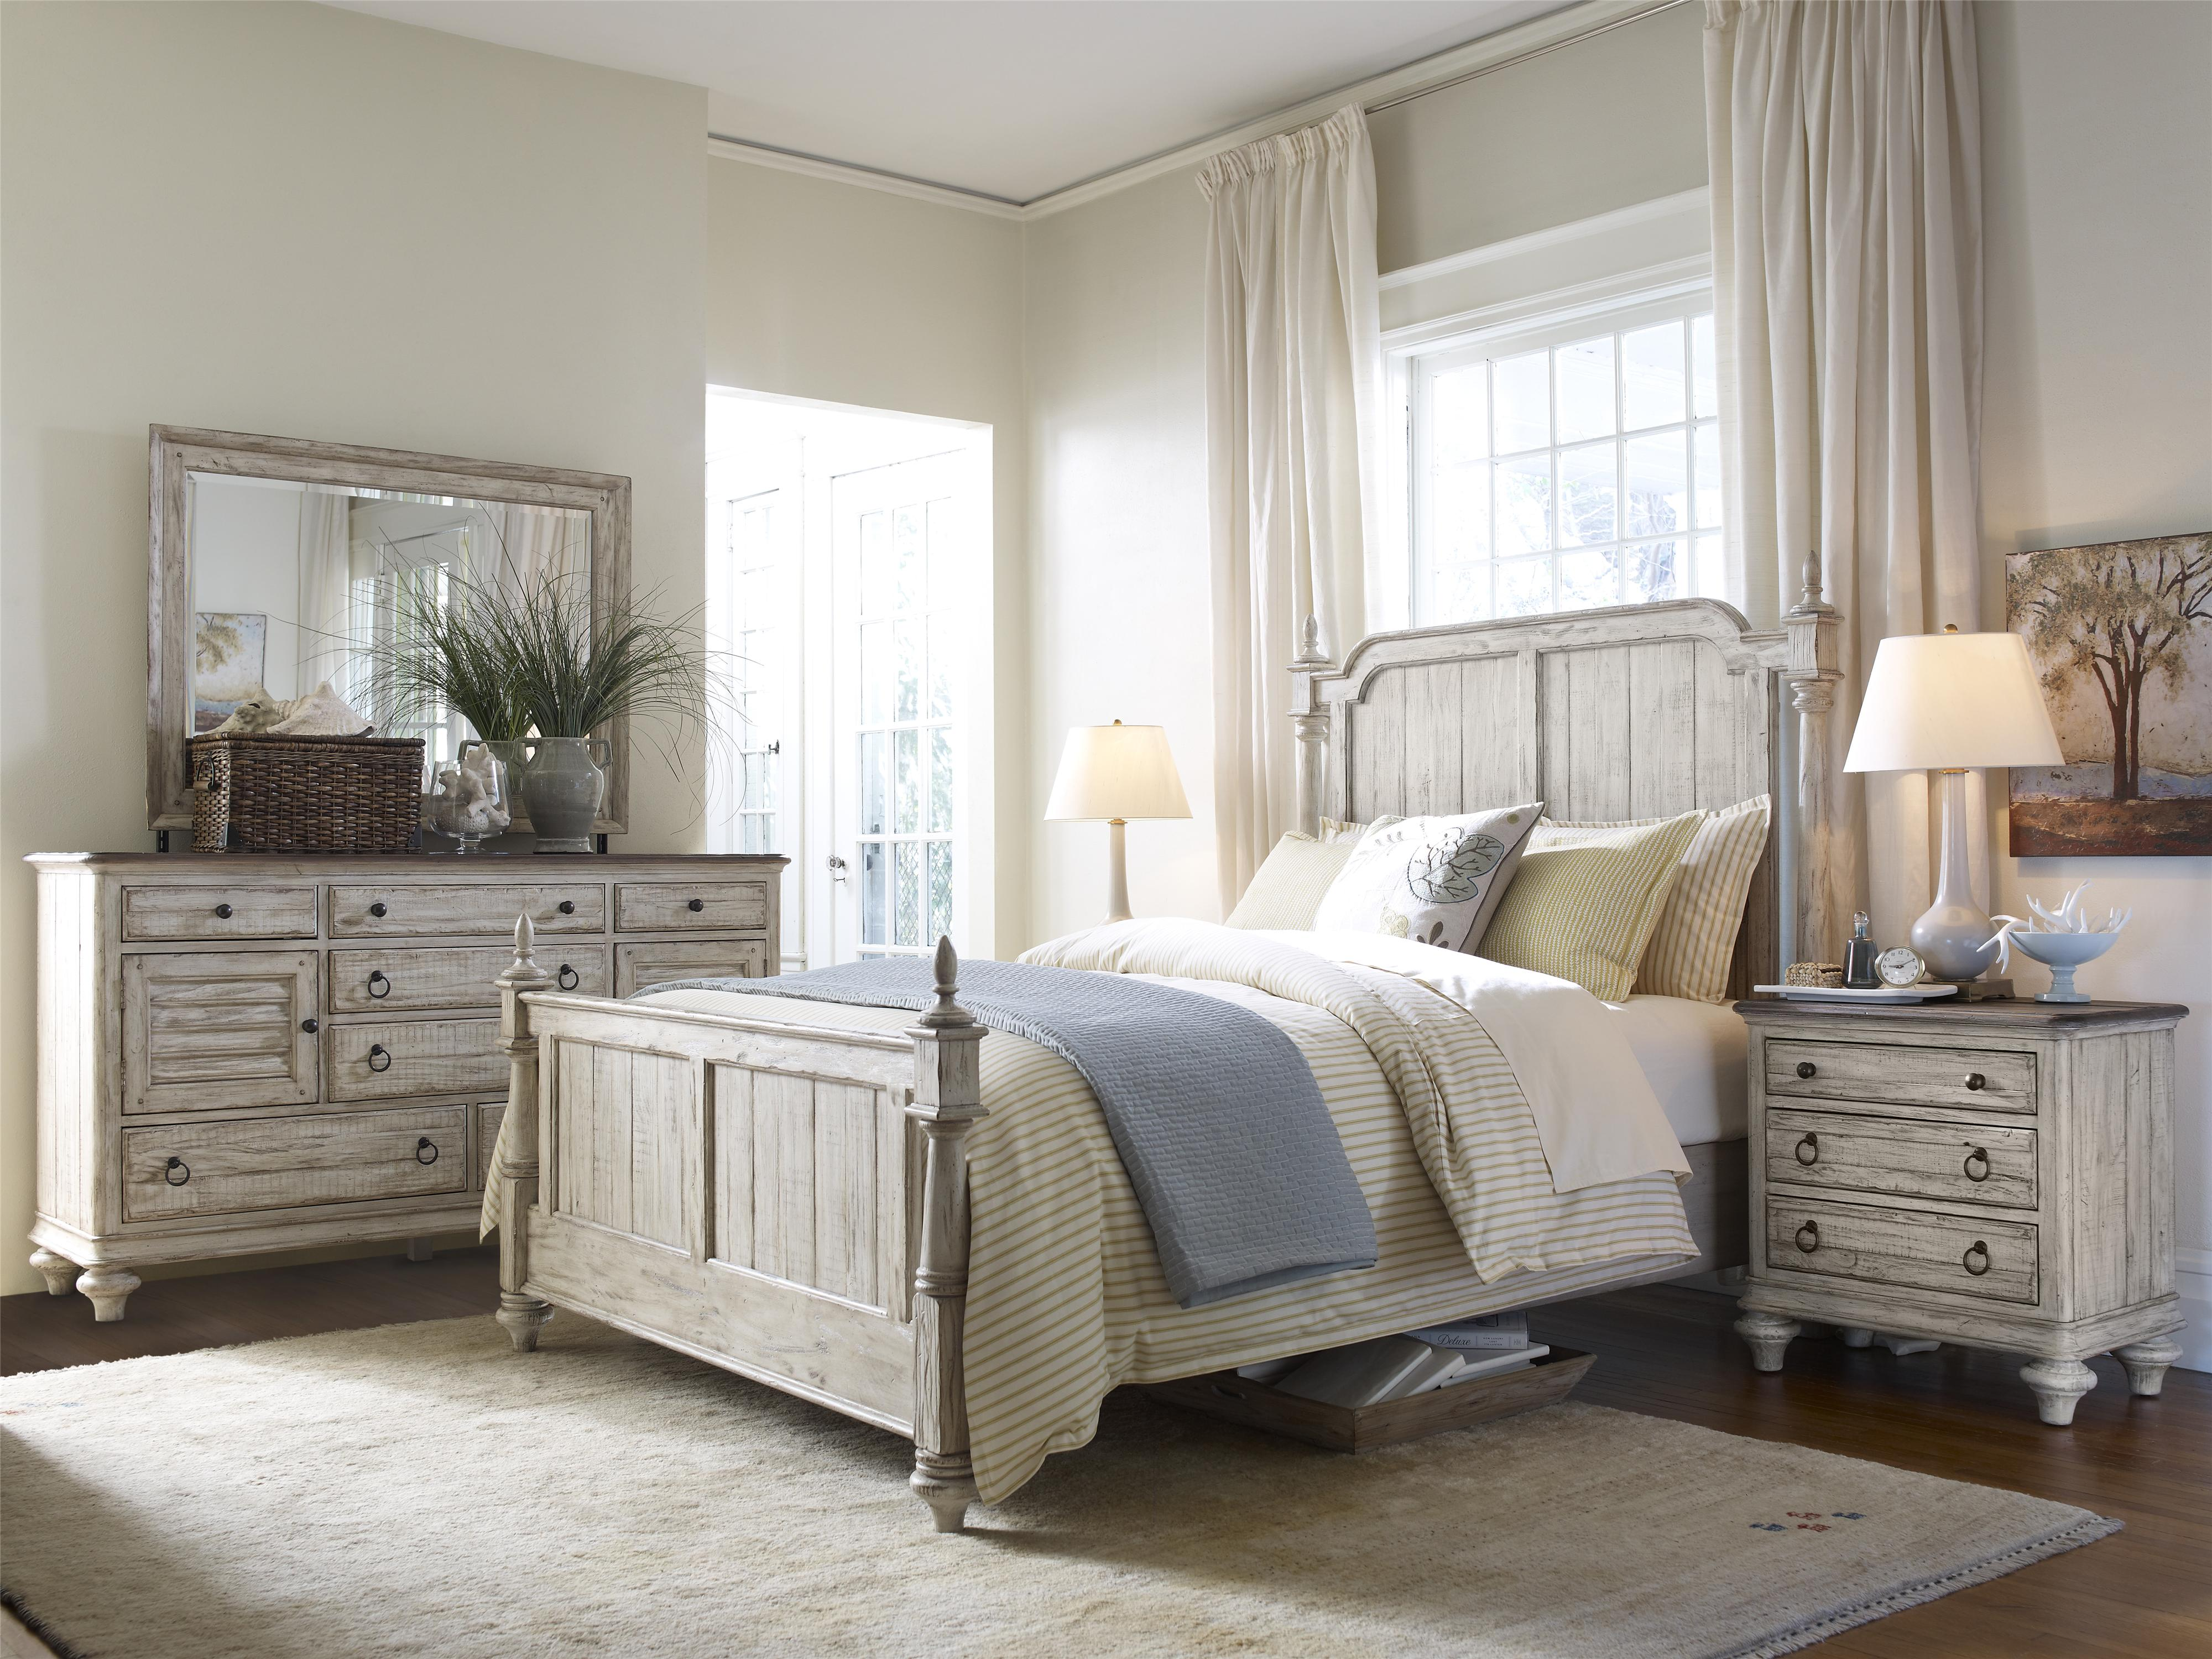 Kincaid Furniture Weatherford 75 141 Night Stand With 3 Drawers And Bun Feet Becker Furniture